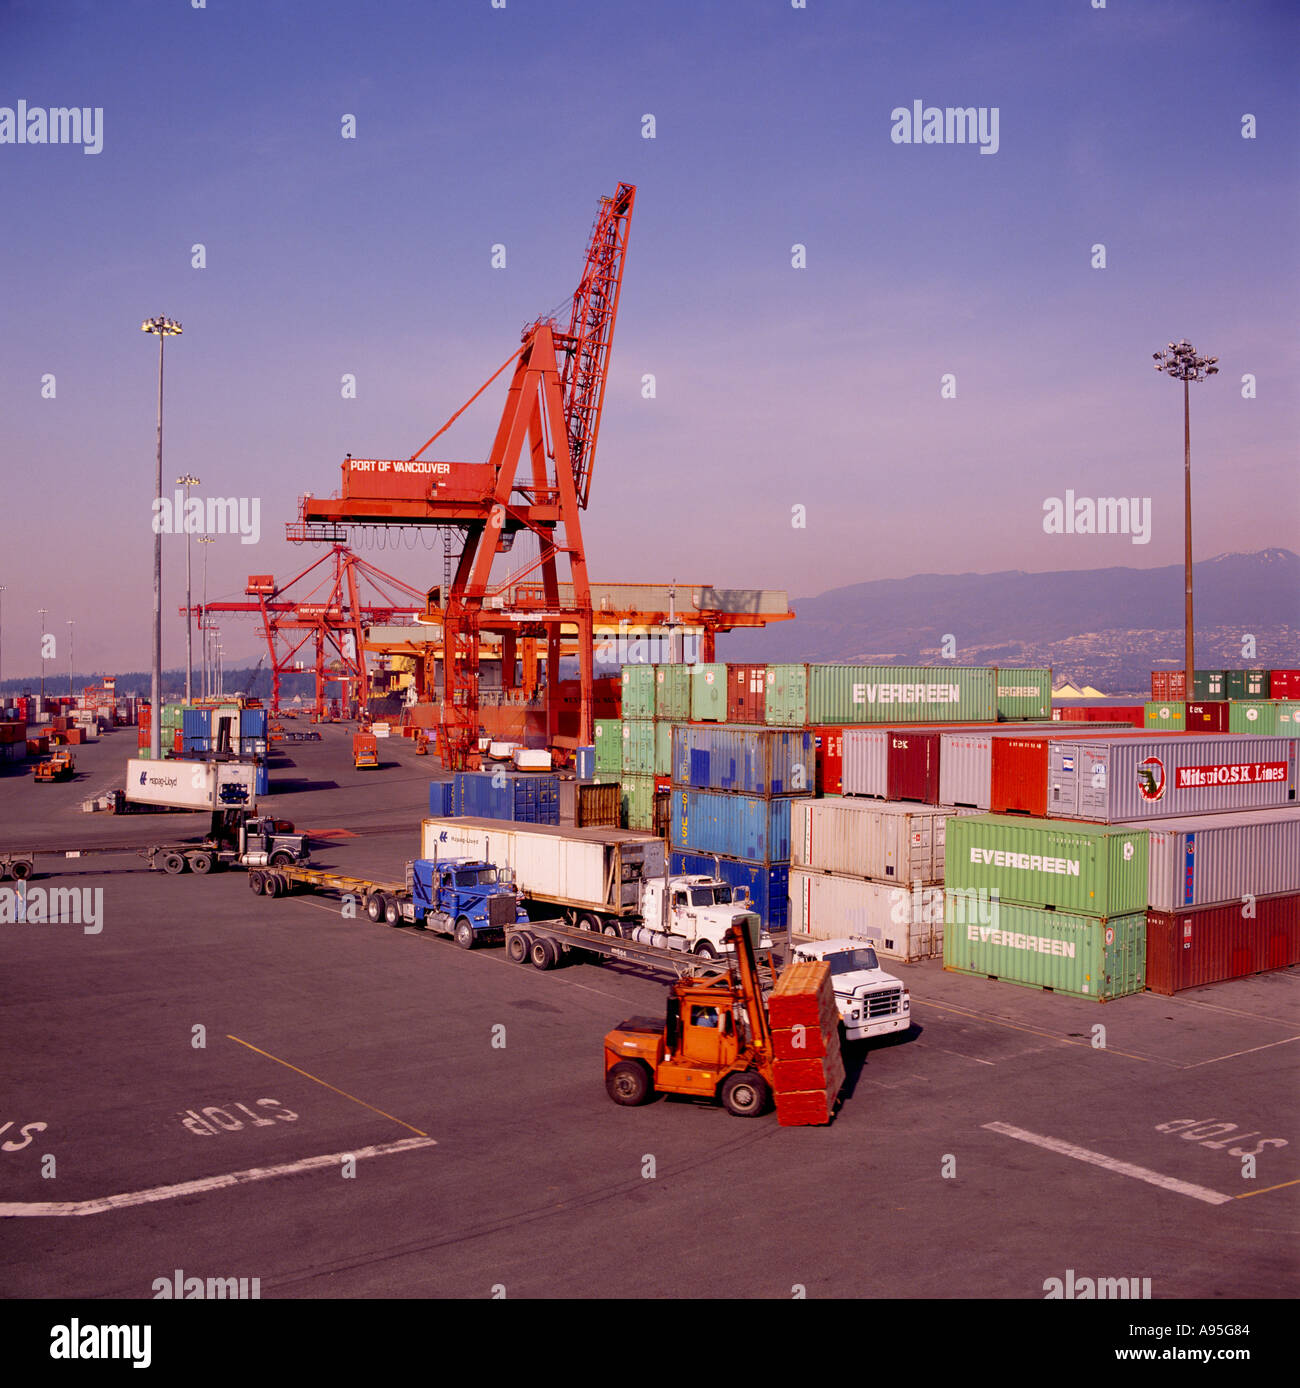 Vancouver Harbour: Container Terminal At The Vancouver Harbour Waterfront In